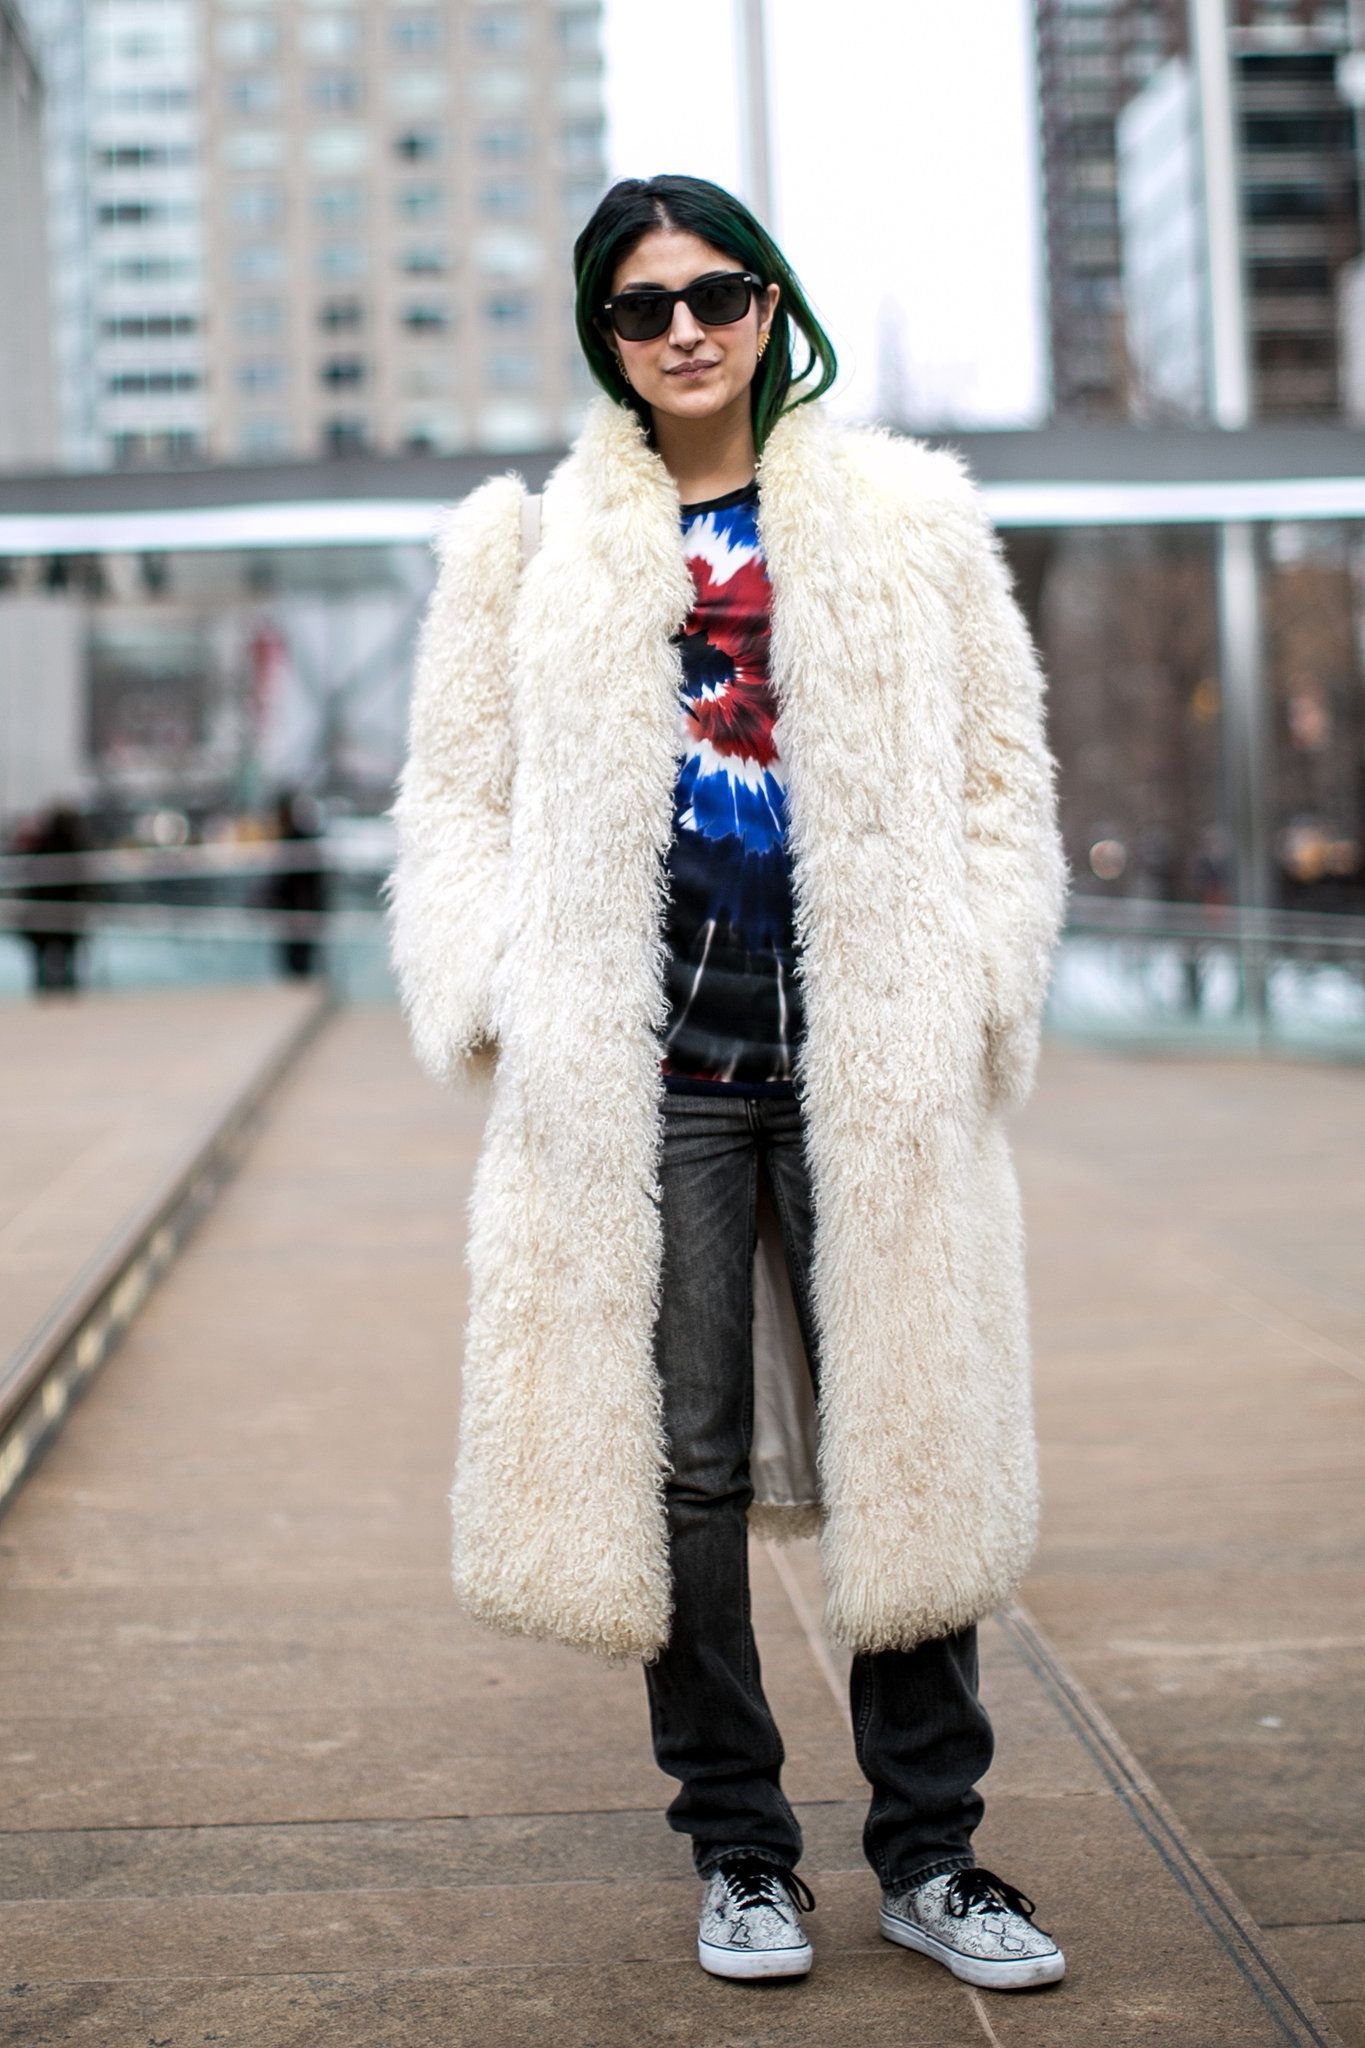 Preetma Singh channeled her inner '90s girl with a tie-dyed tee and furry topper.